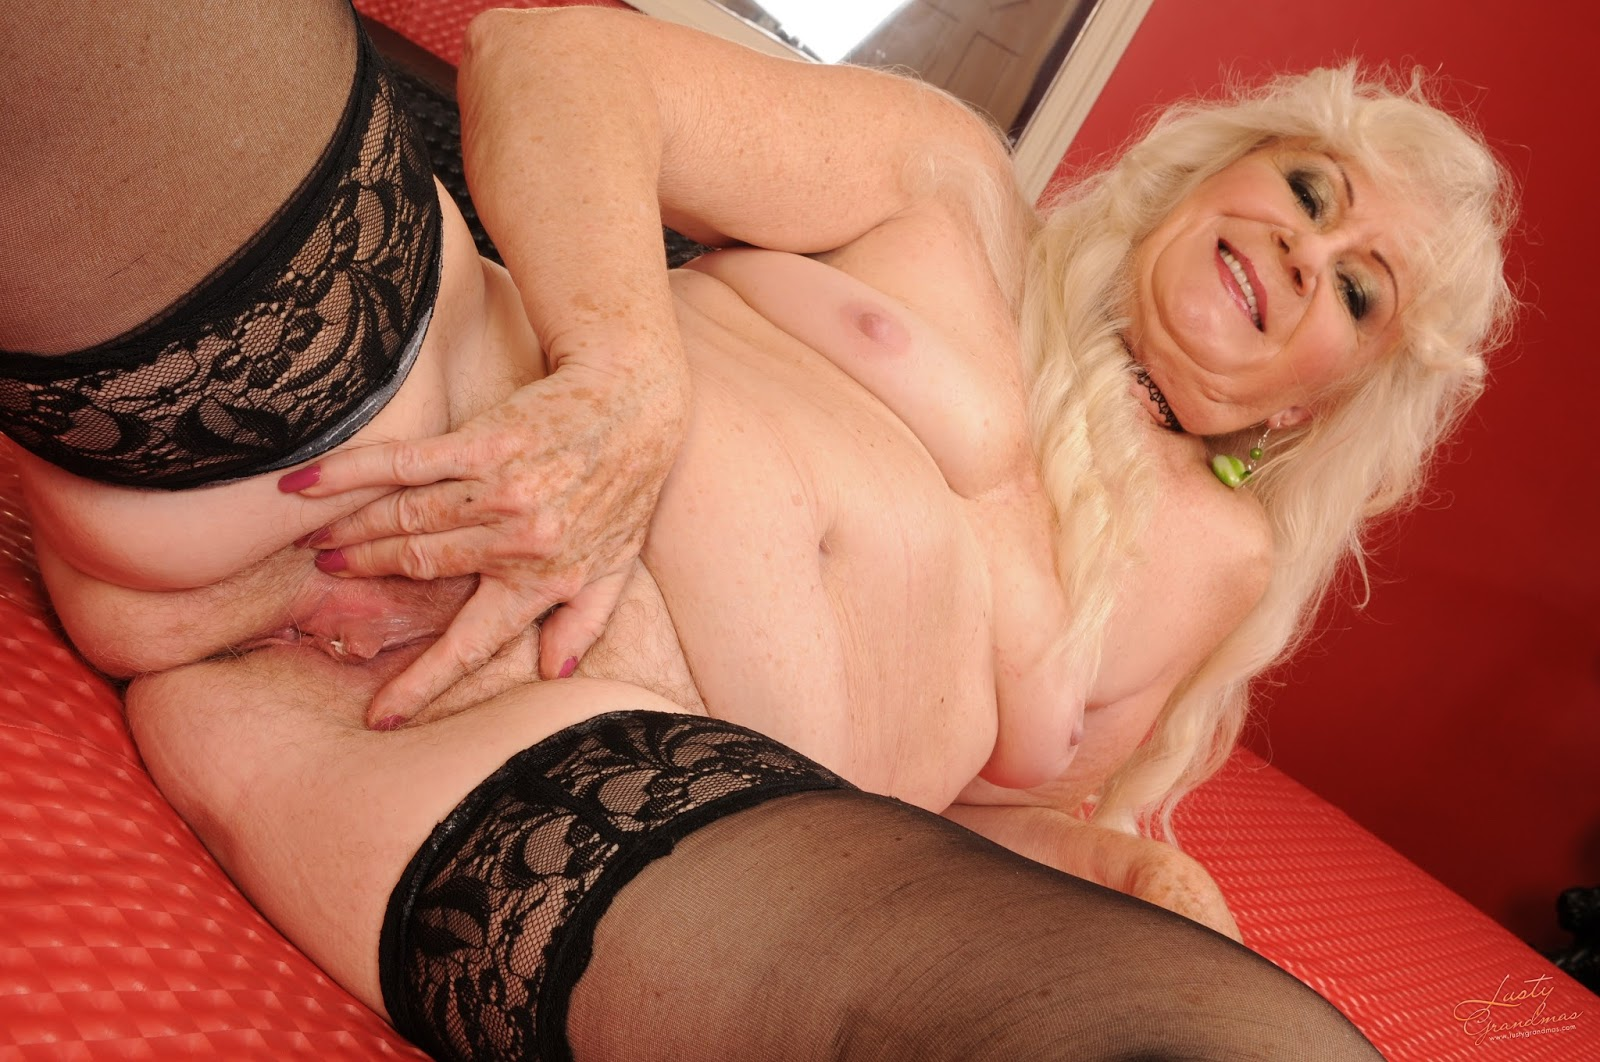 Free sex video of old women